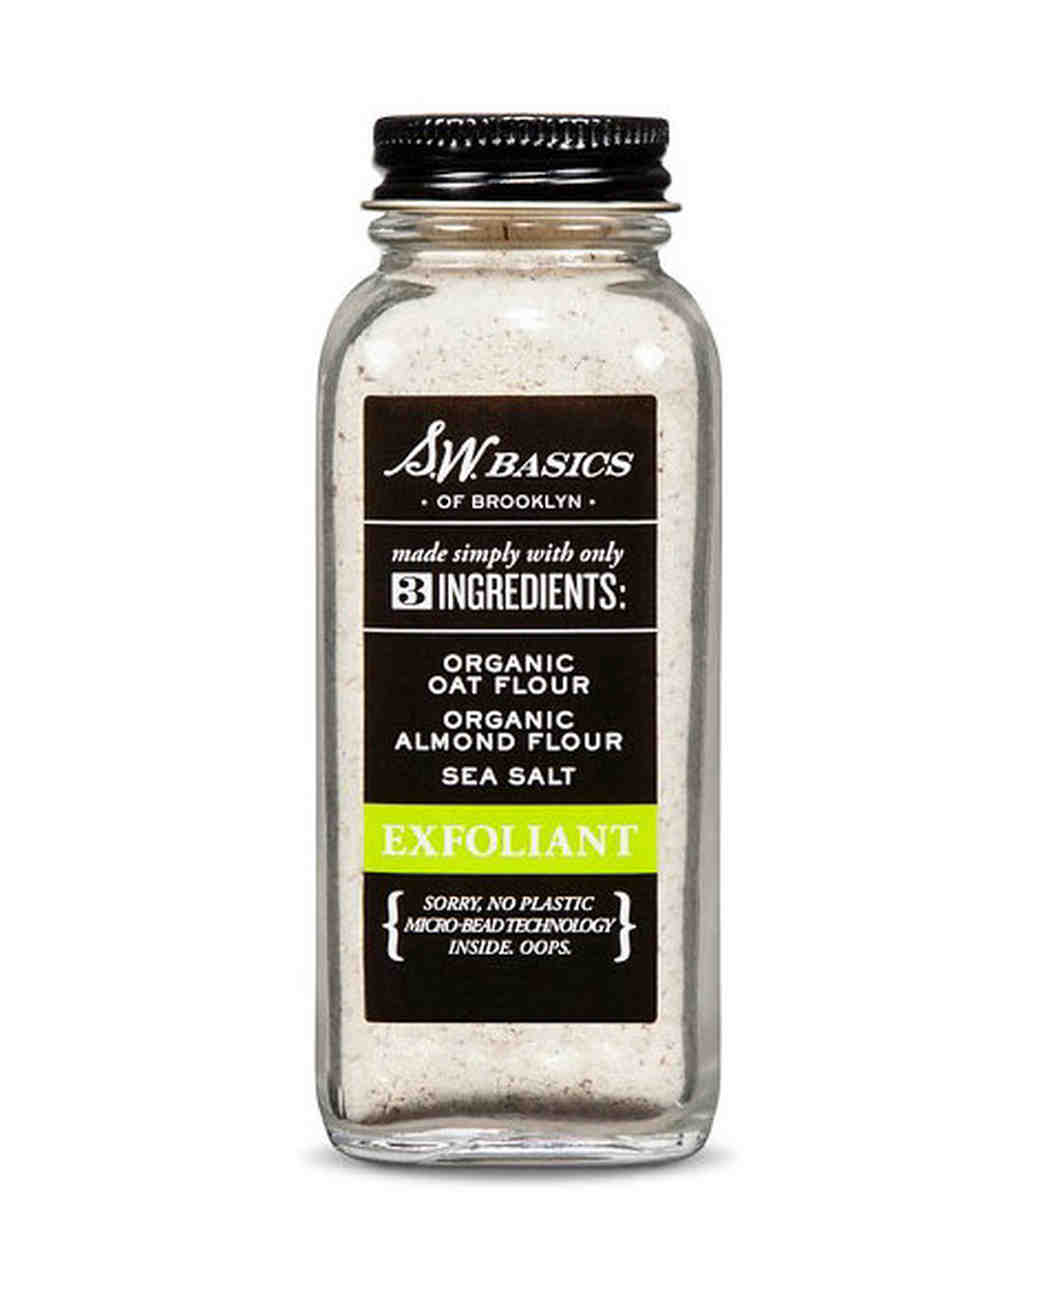 sw basics sea salt exfoliant